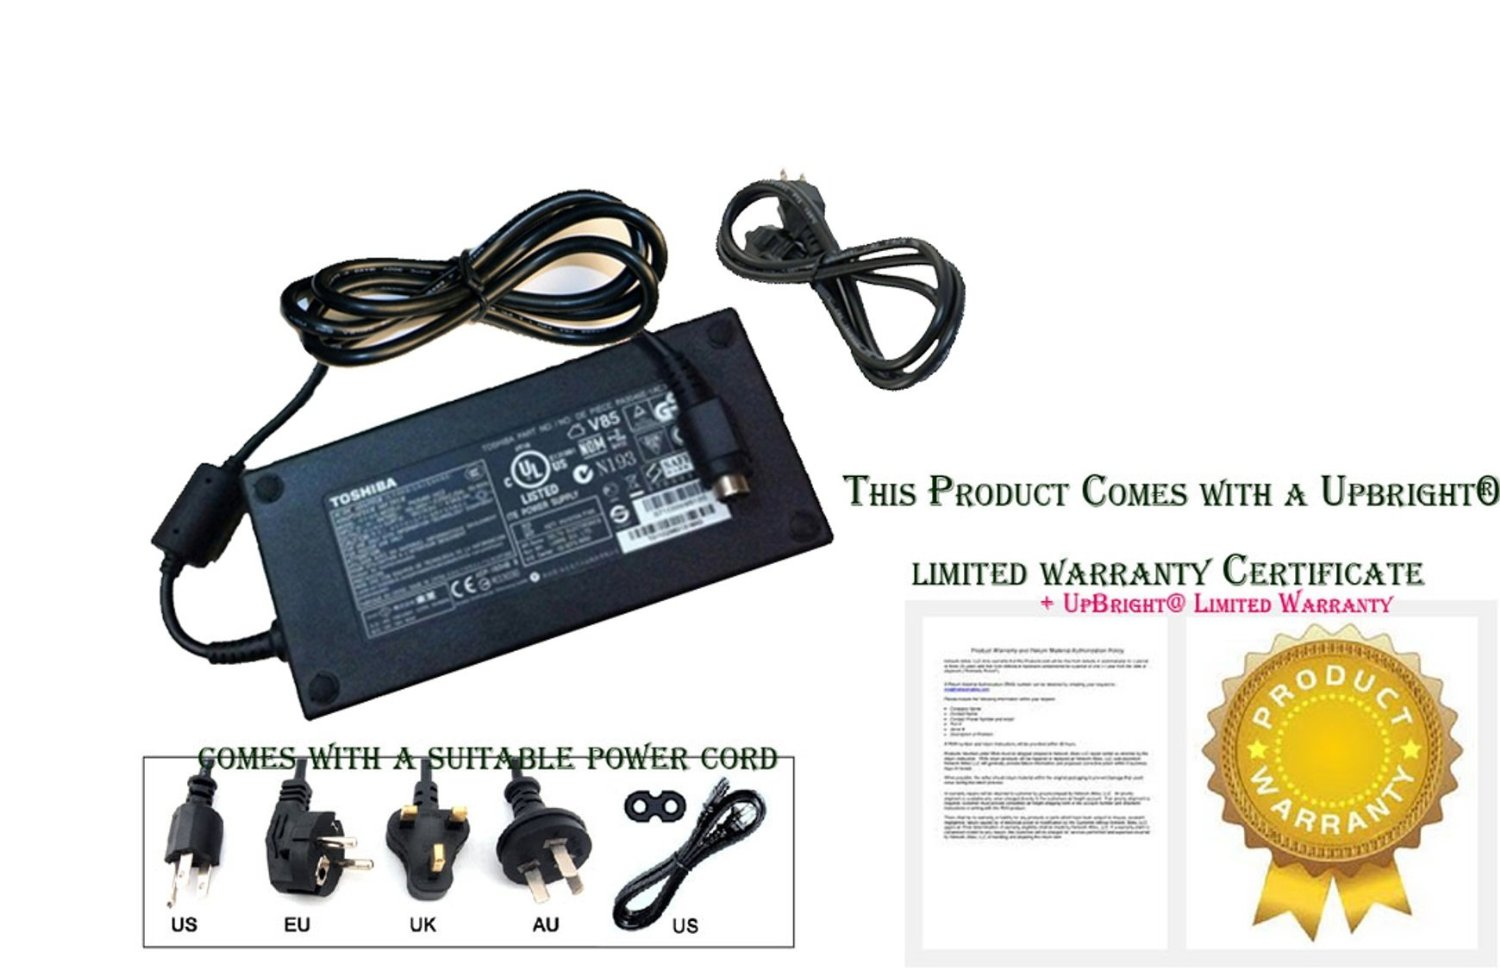 Cheap Toshiba Power Supply 19v, find Toshiba Power Supply